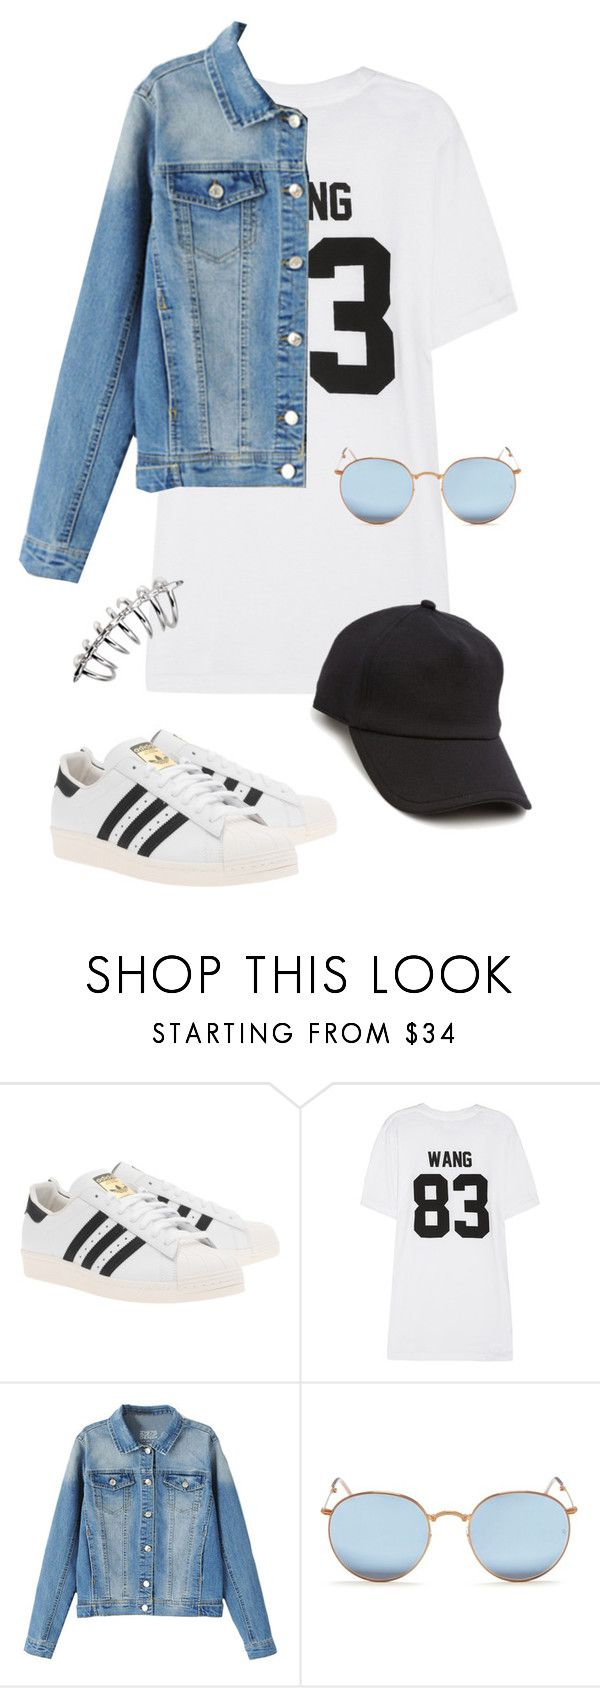 """Untitled #283"" by n23da ❤ liked on Polyvore featuring adidas Originals, LPD NEW YORK, Ray-Ban and rag & bone"